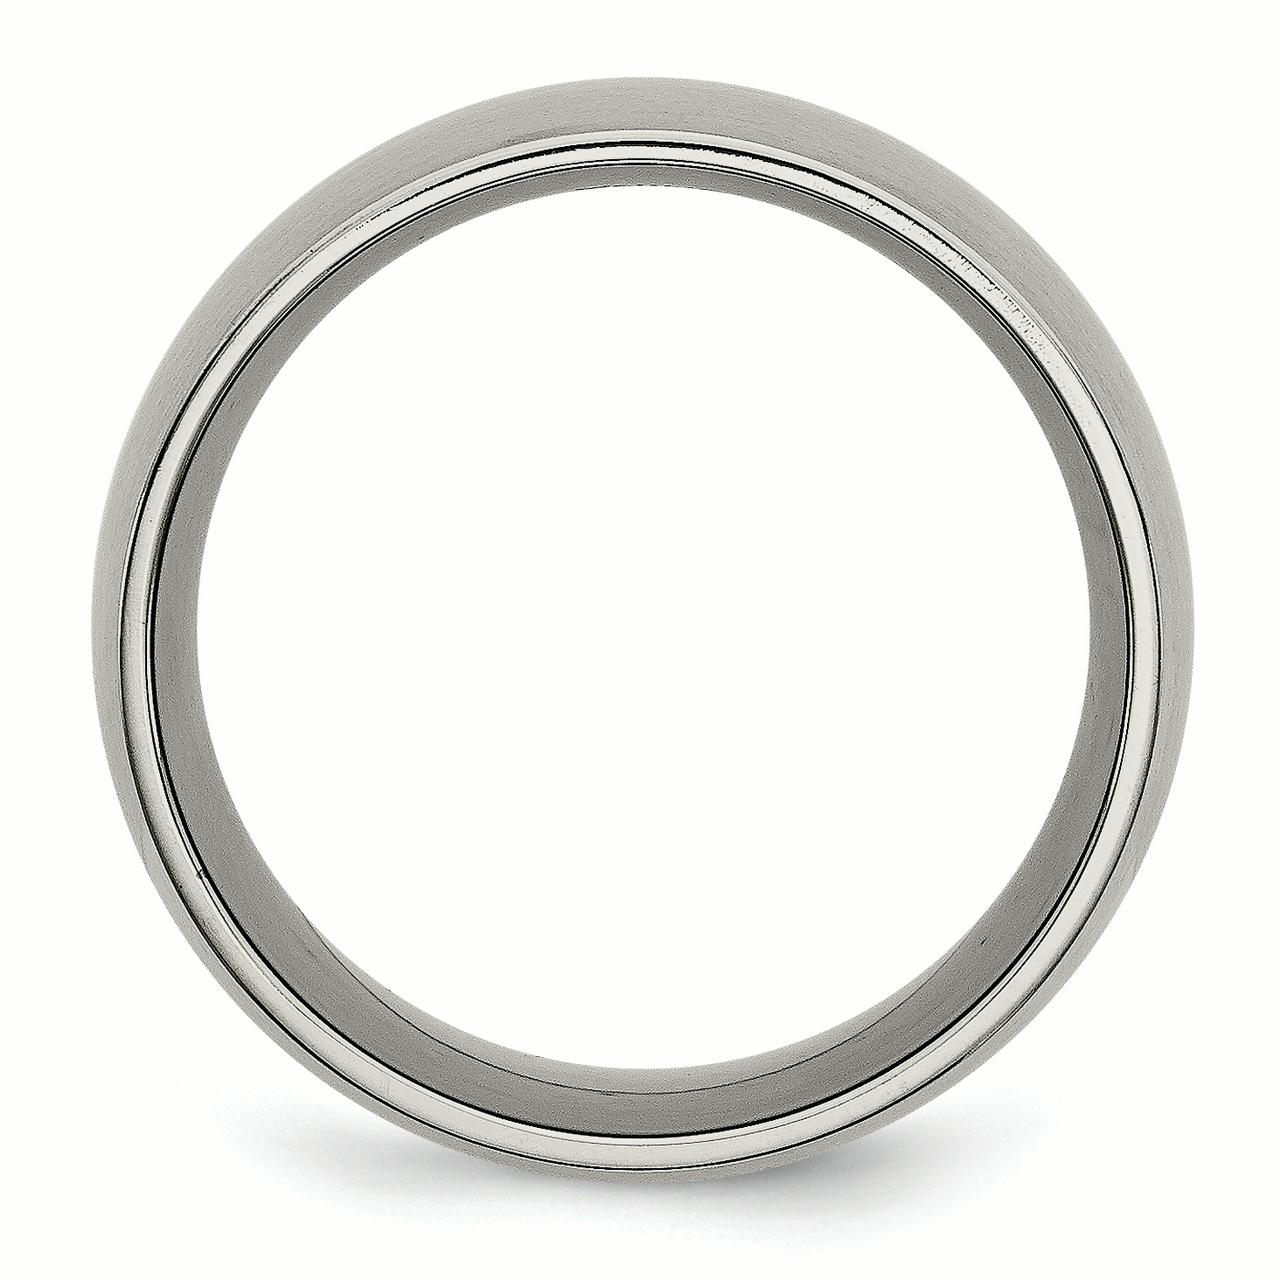 Titanium 12mm Brushed Wedding Ring Band Size 8.00 Classic Domed Fashion Jewelry Gifts For Women For Her - image 3 of 6